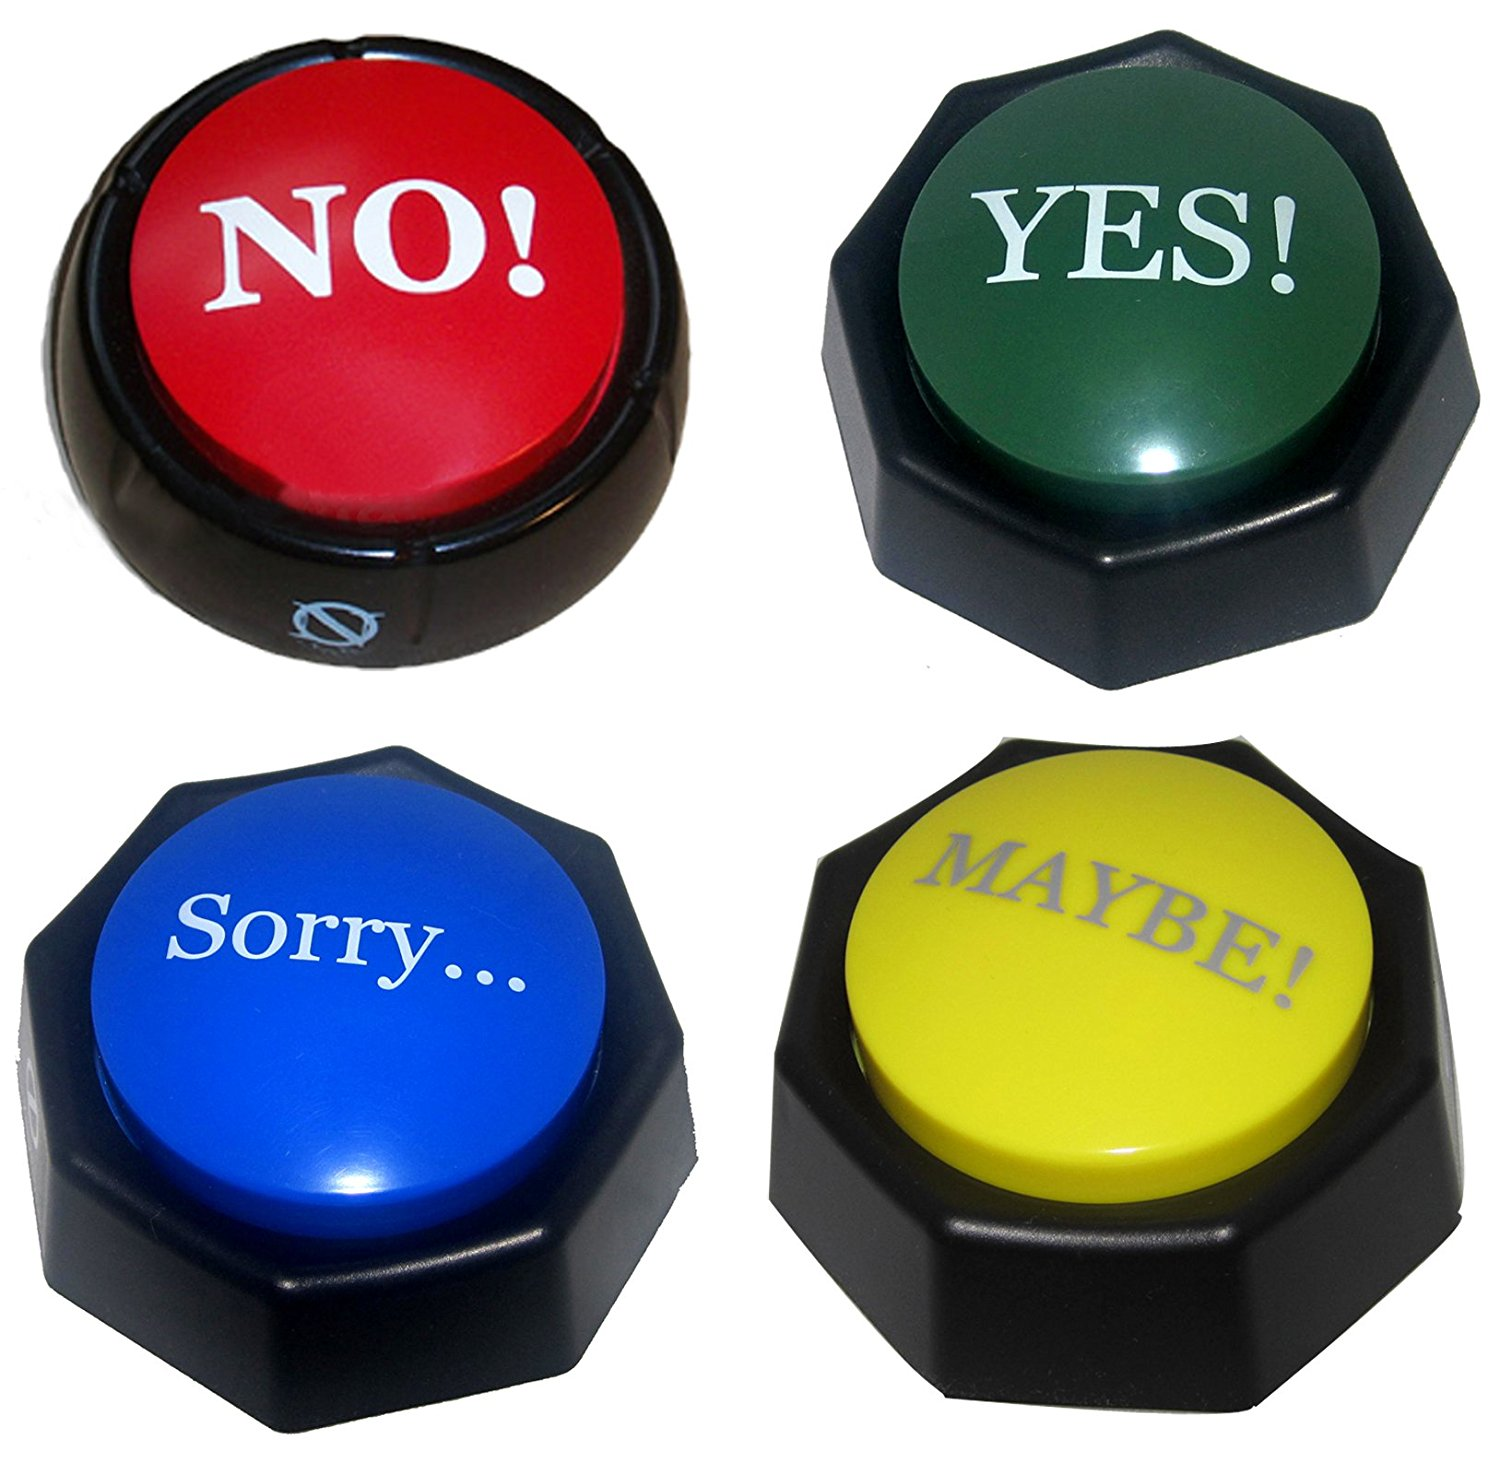 4 Total Buttons! The NO, YES, SORRY and MAYBE Buttons ...